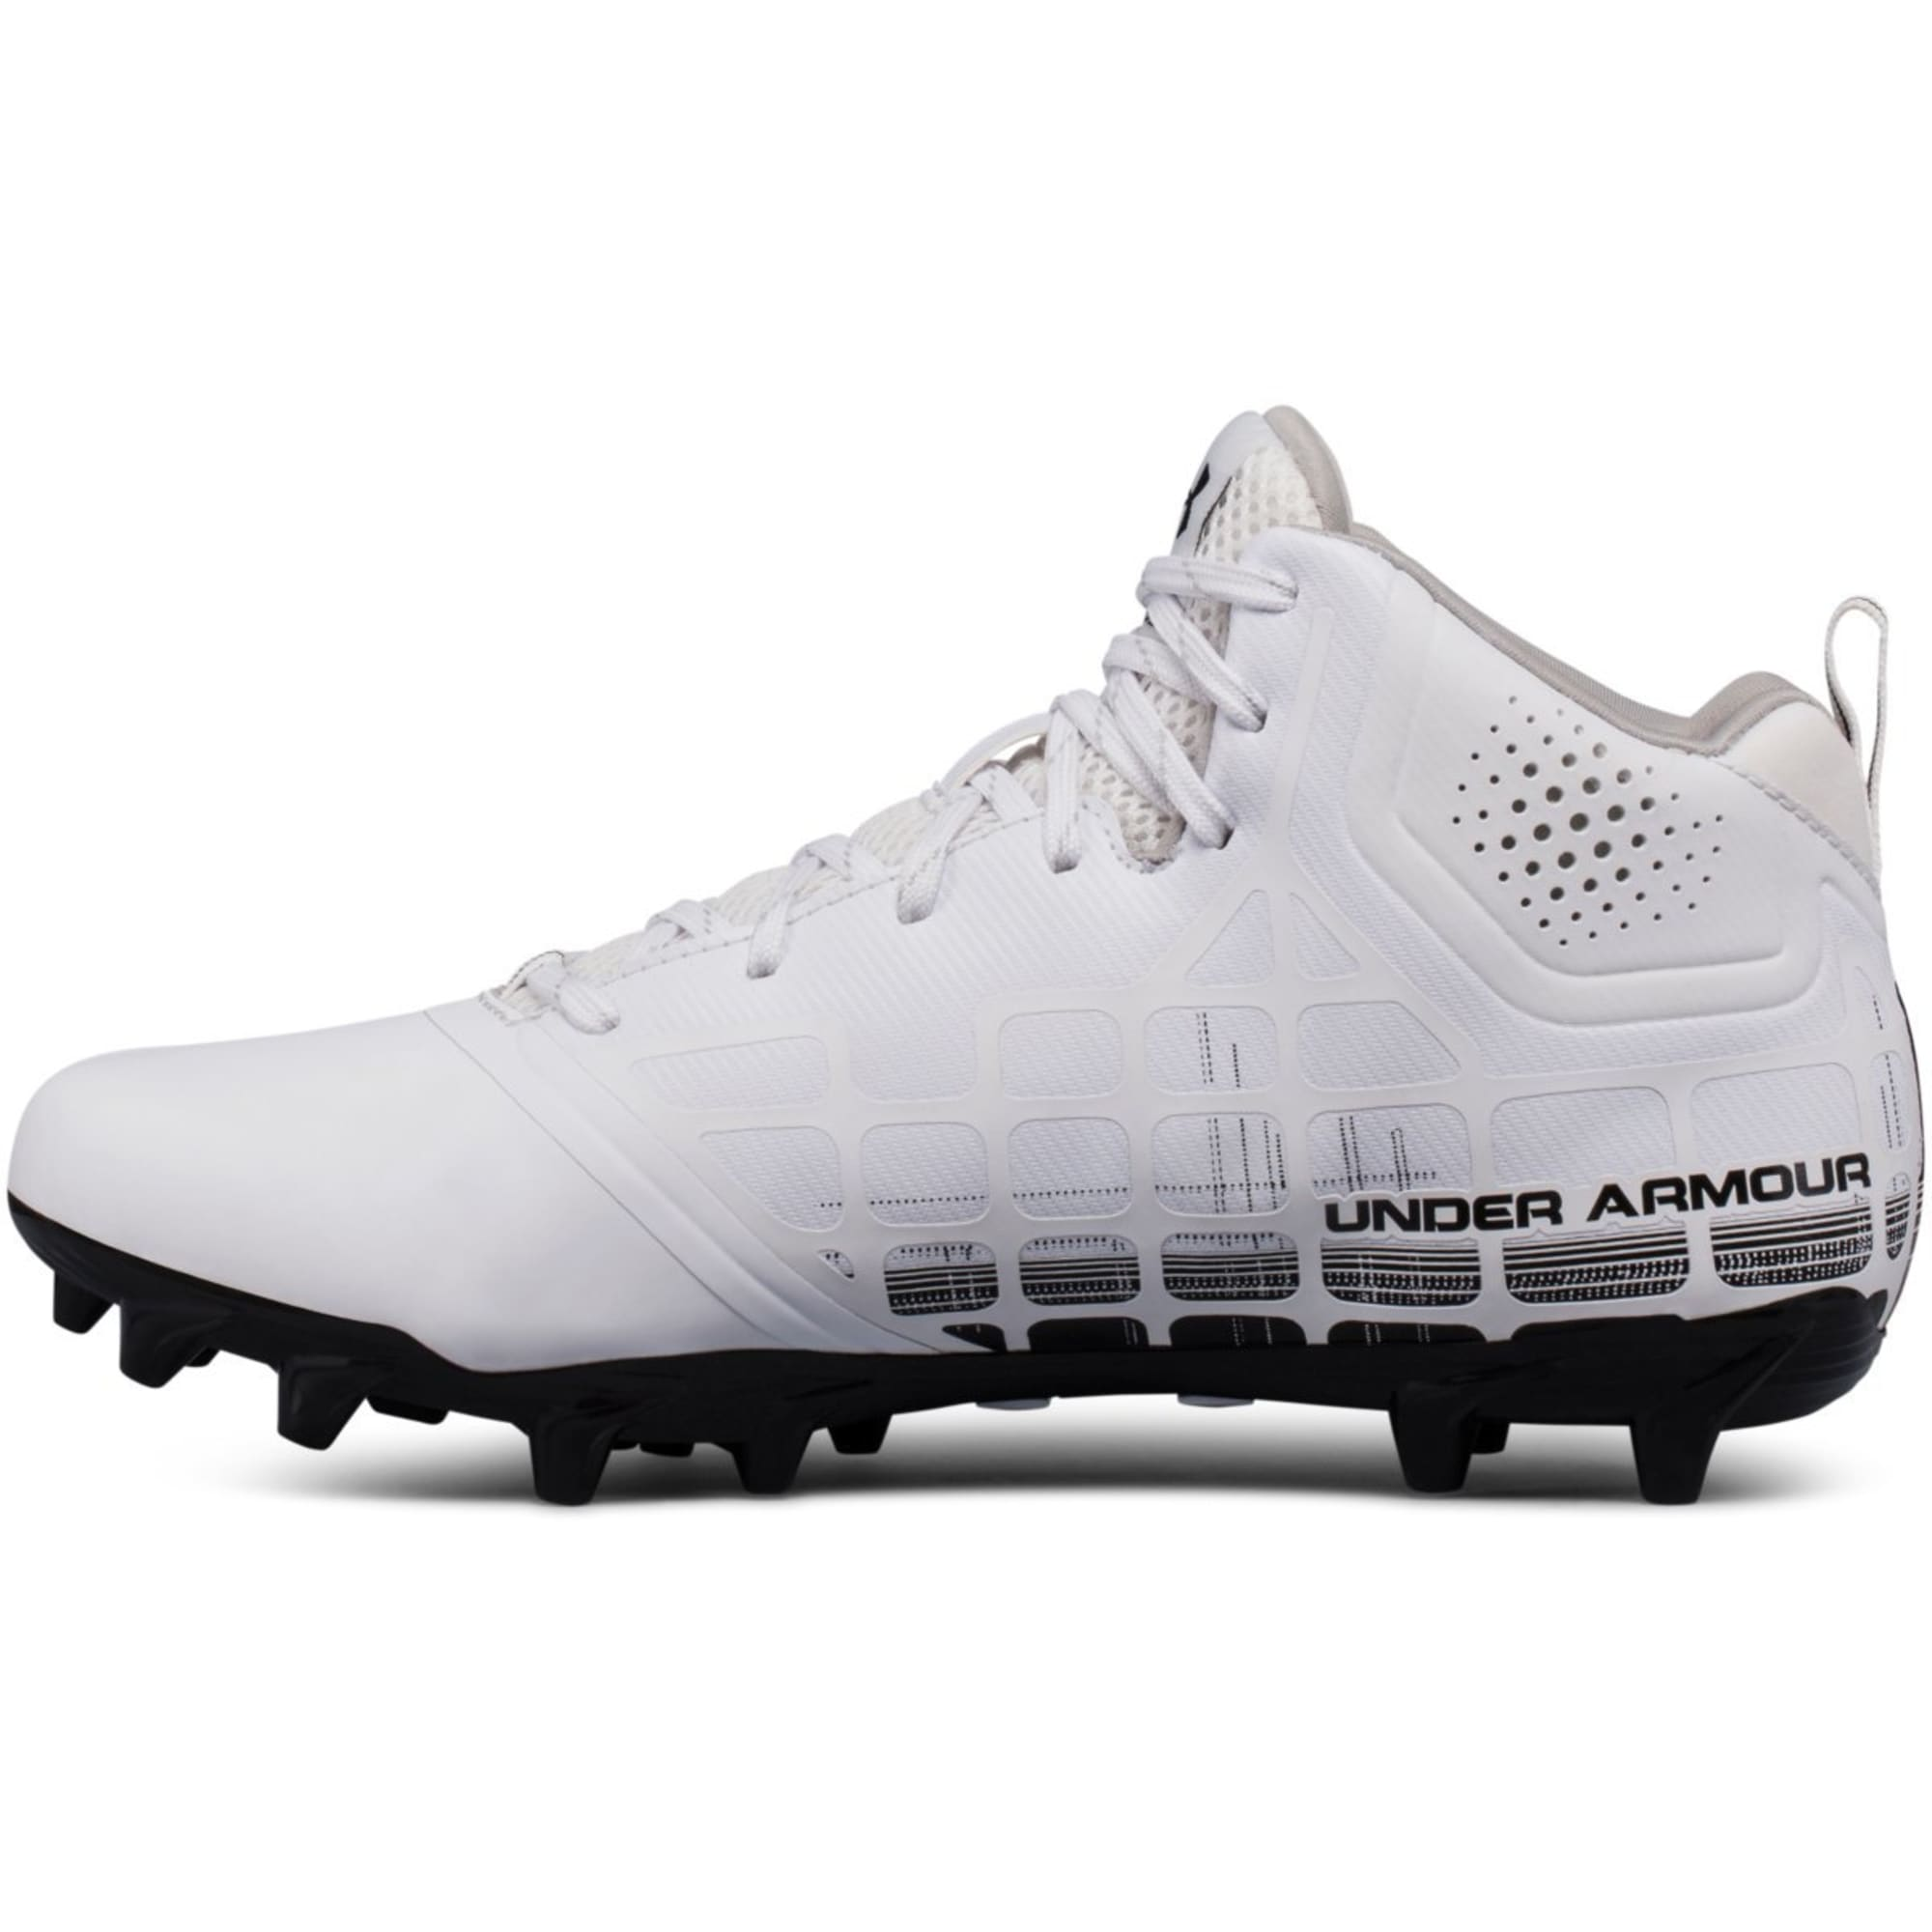 NEW Under Armour cleats mens shoes size 13 Banshee